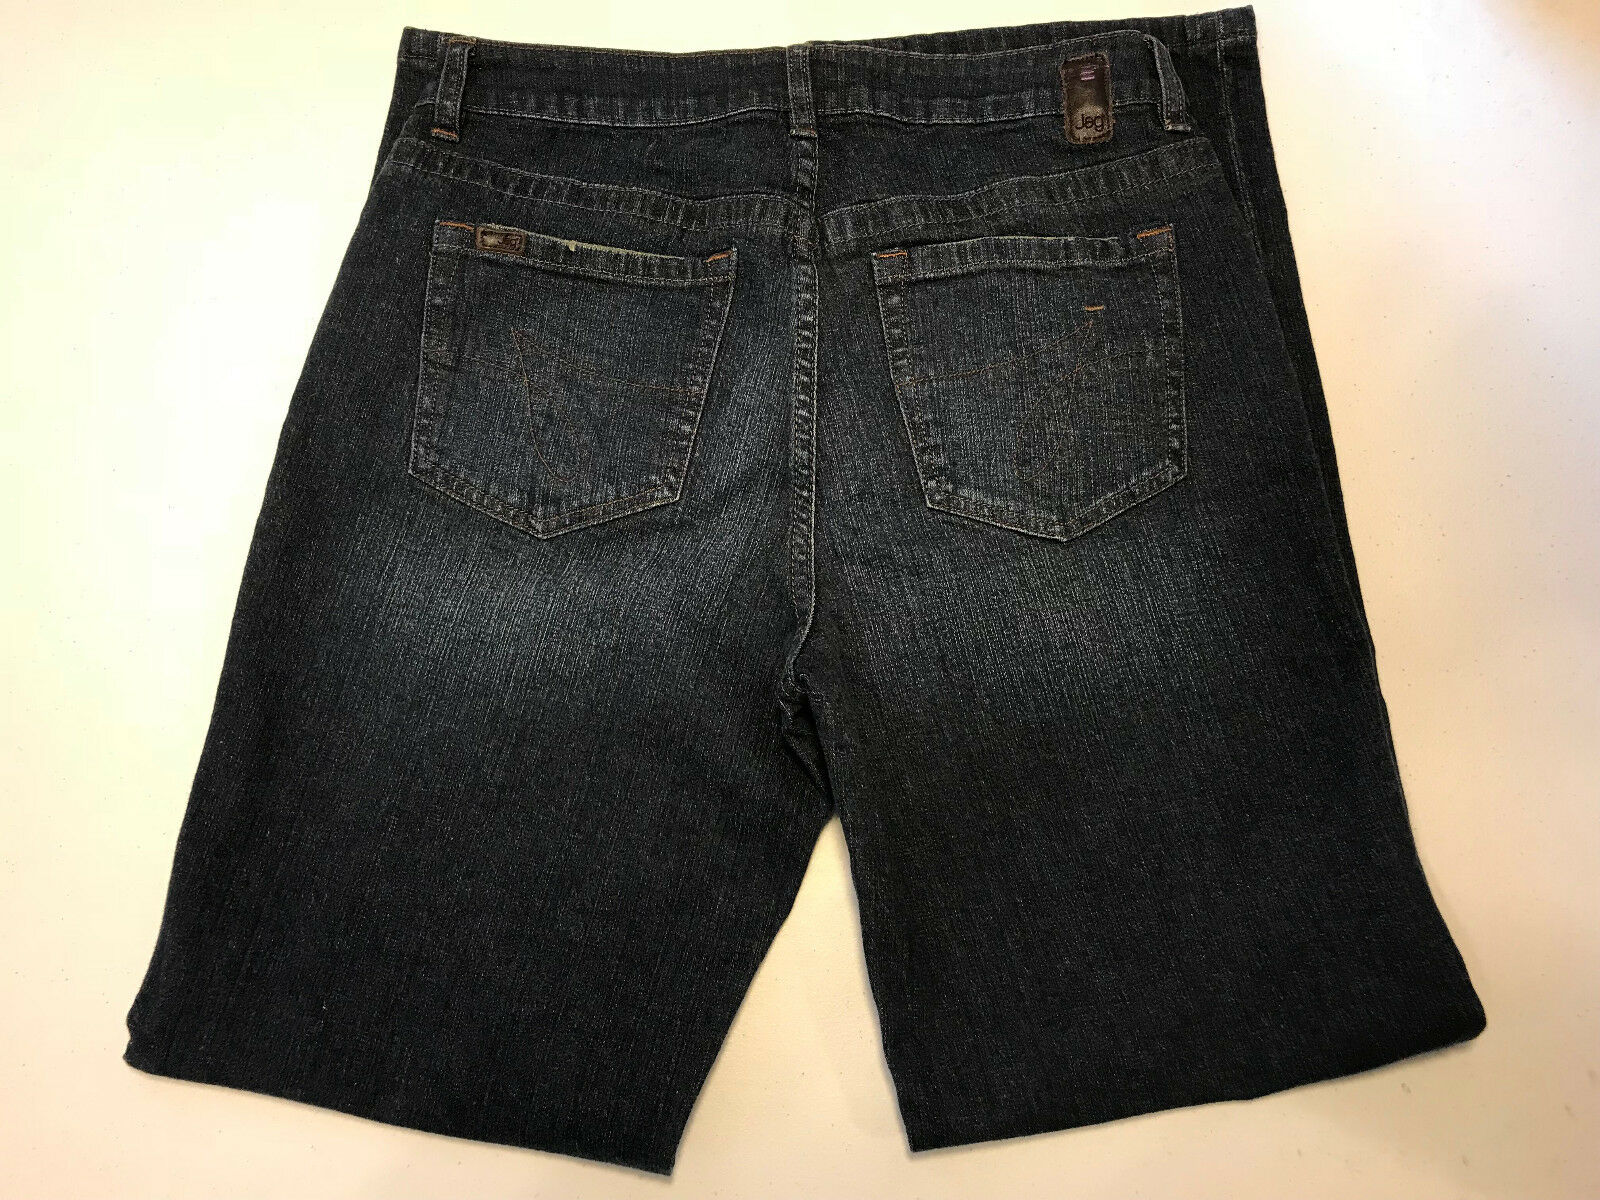 New JAG Foster FIt Mid-Rise Bootcut Stretch Jeans Size 10P